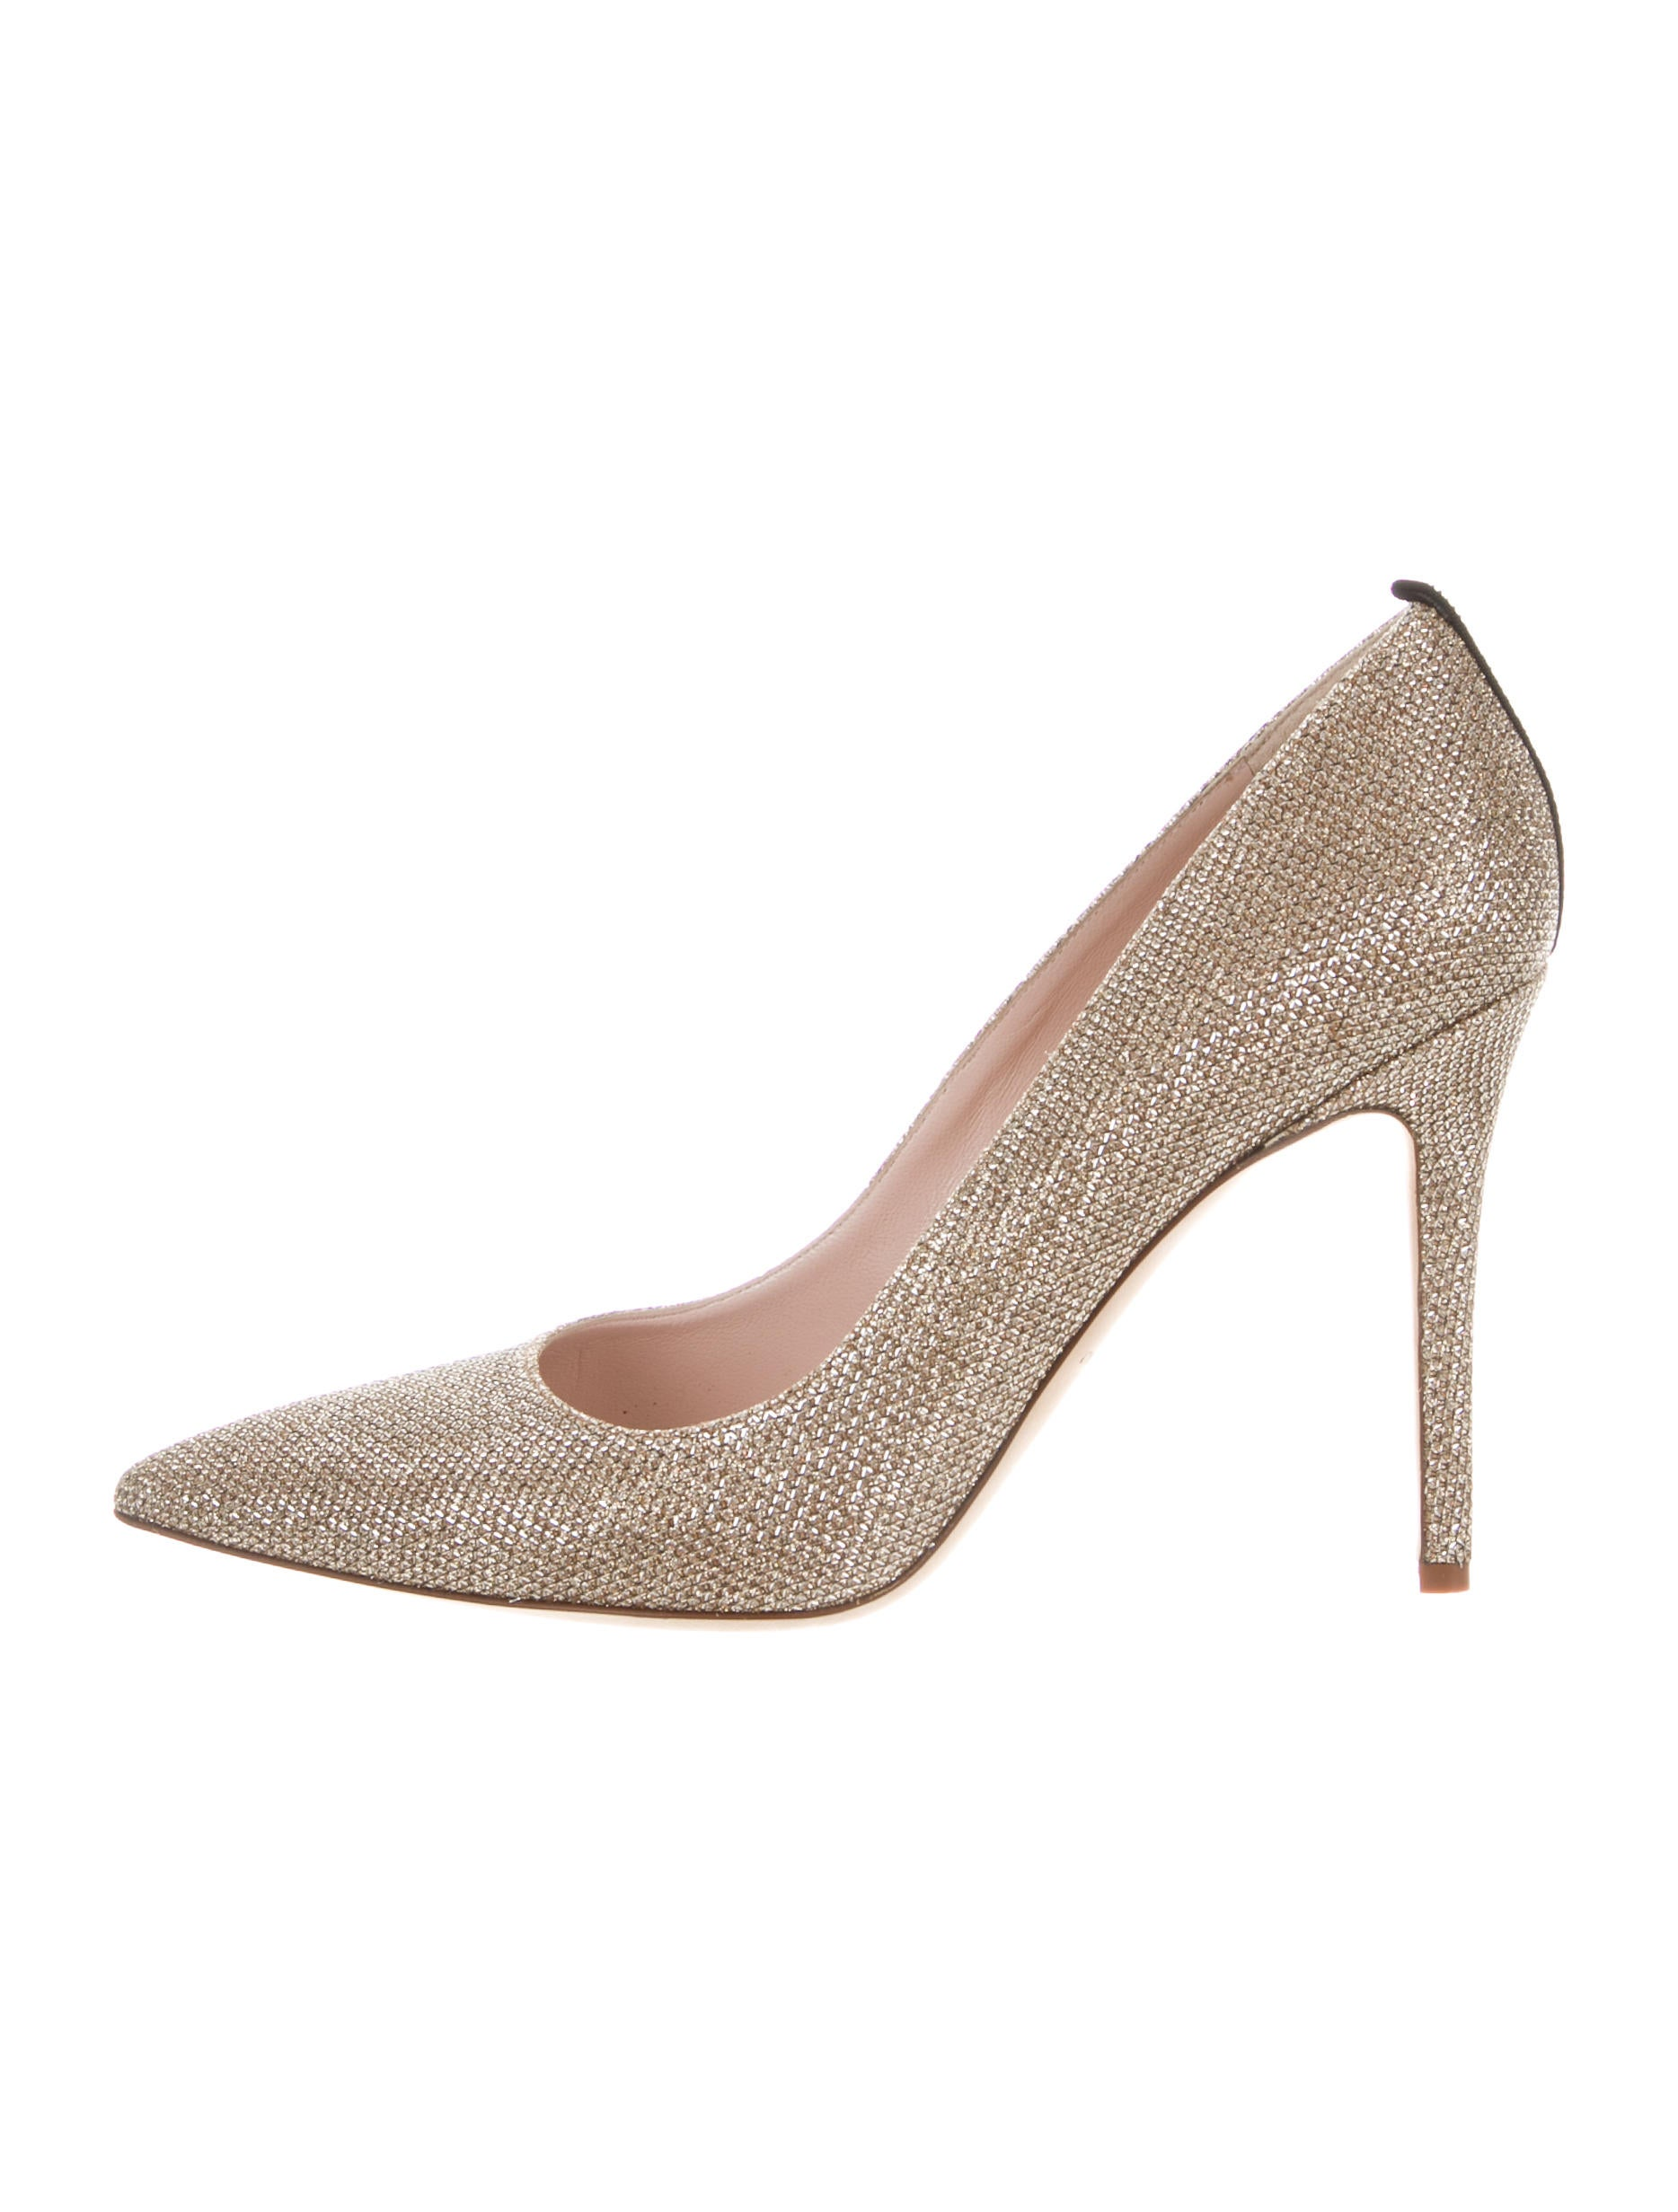 free shipping excellent Sarah Jessica Parker Lurex Pointed-Toe Pumps clearance visa payment 4E8XdeIoy